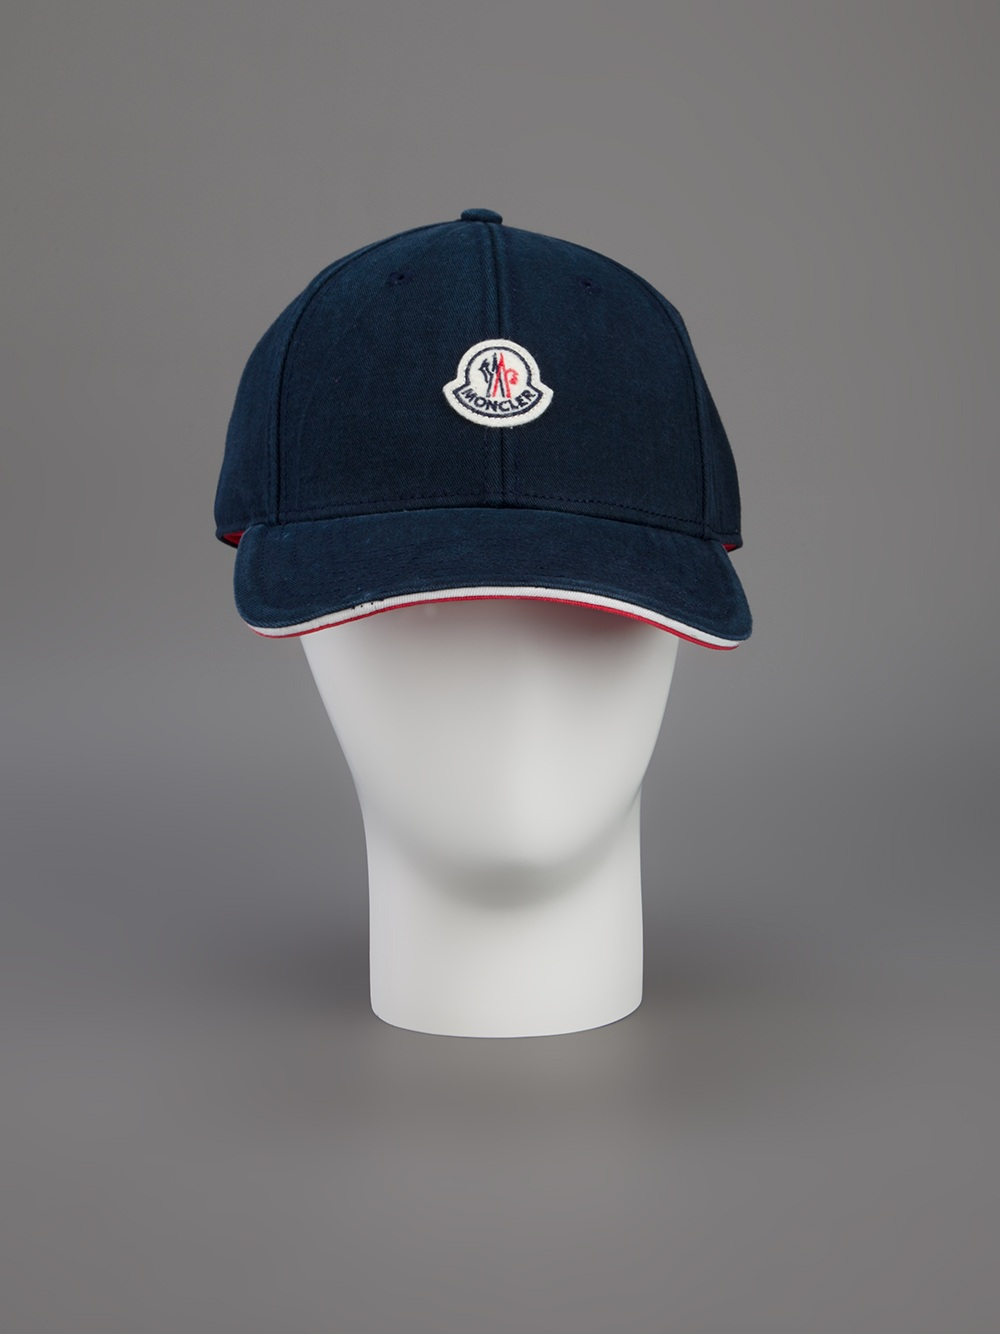 Moncler Logo Baseball Cap in Blue for Men - Lyst 4209d6051765